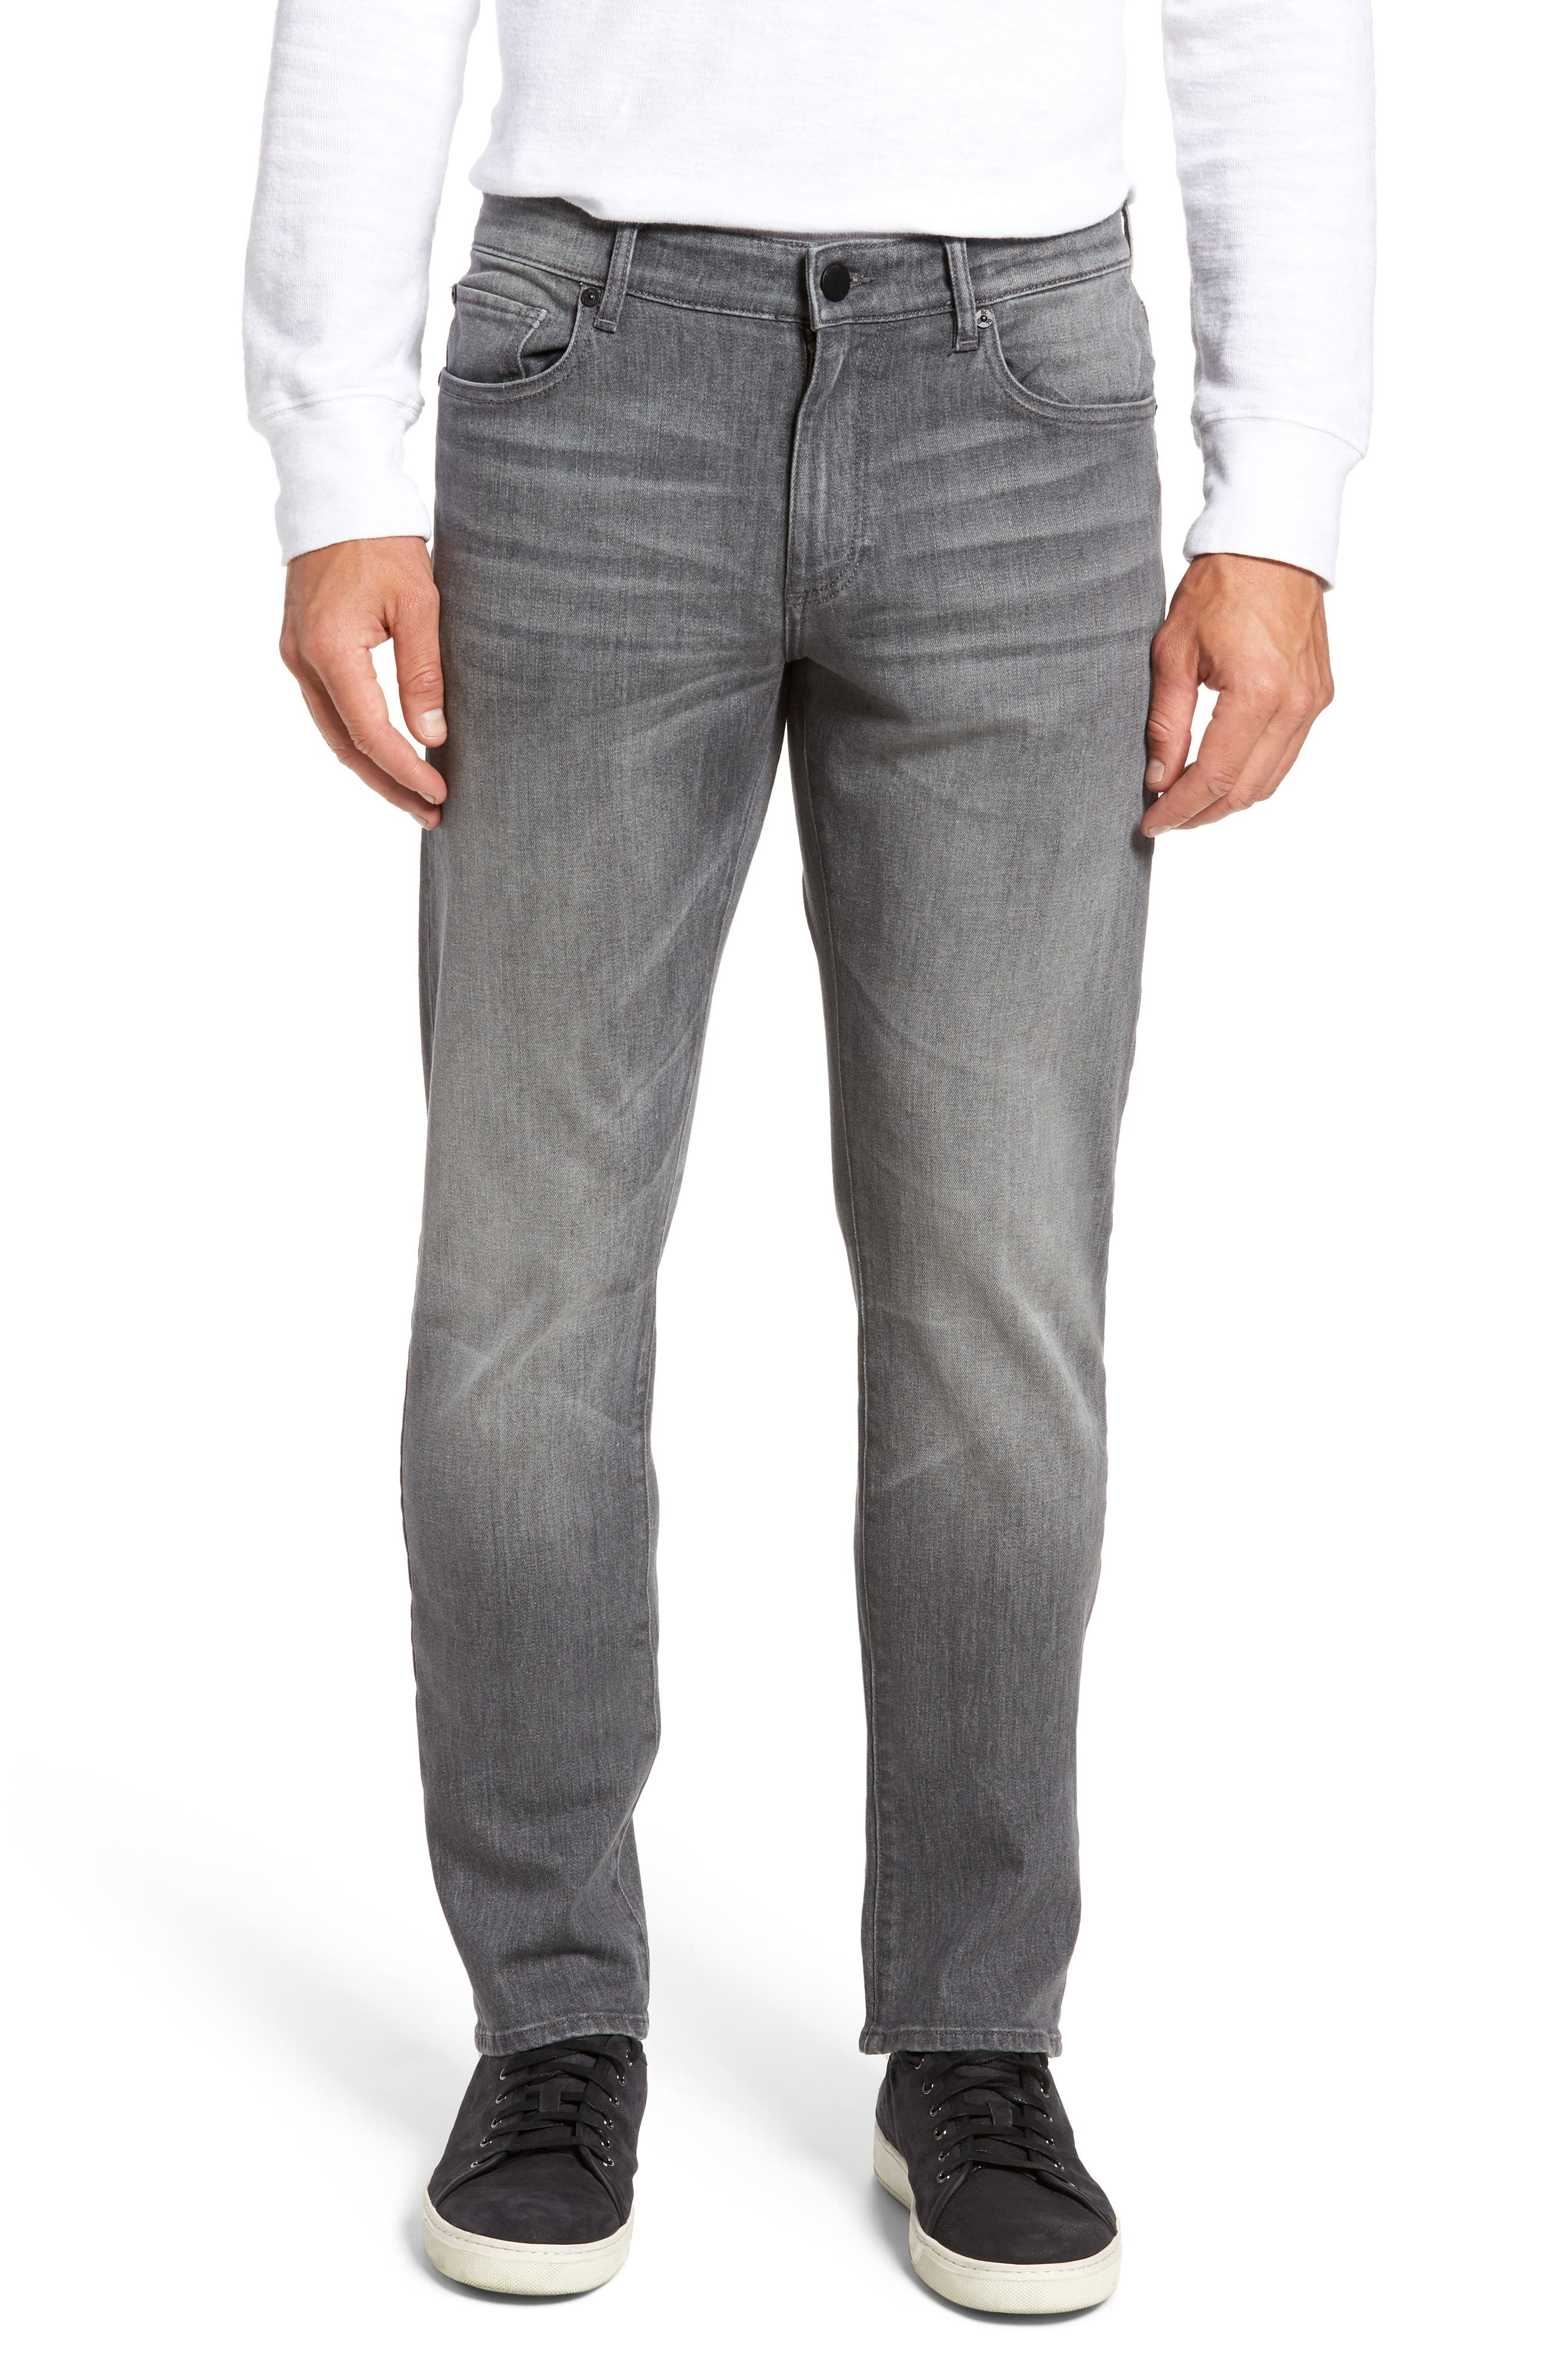 Russell Slim Straight Fit Jeans,                         Main,                         color, 020